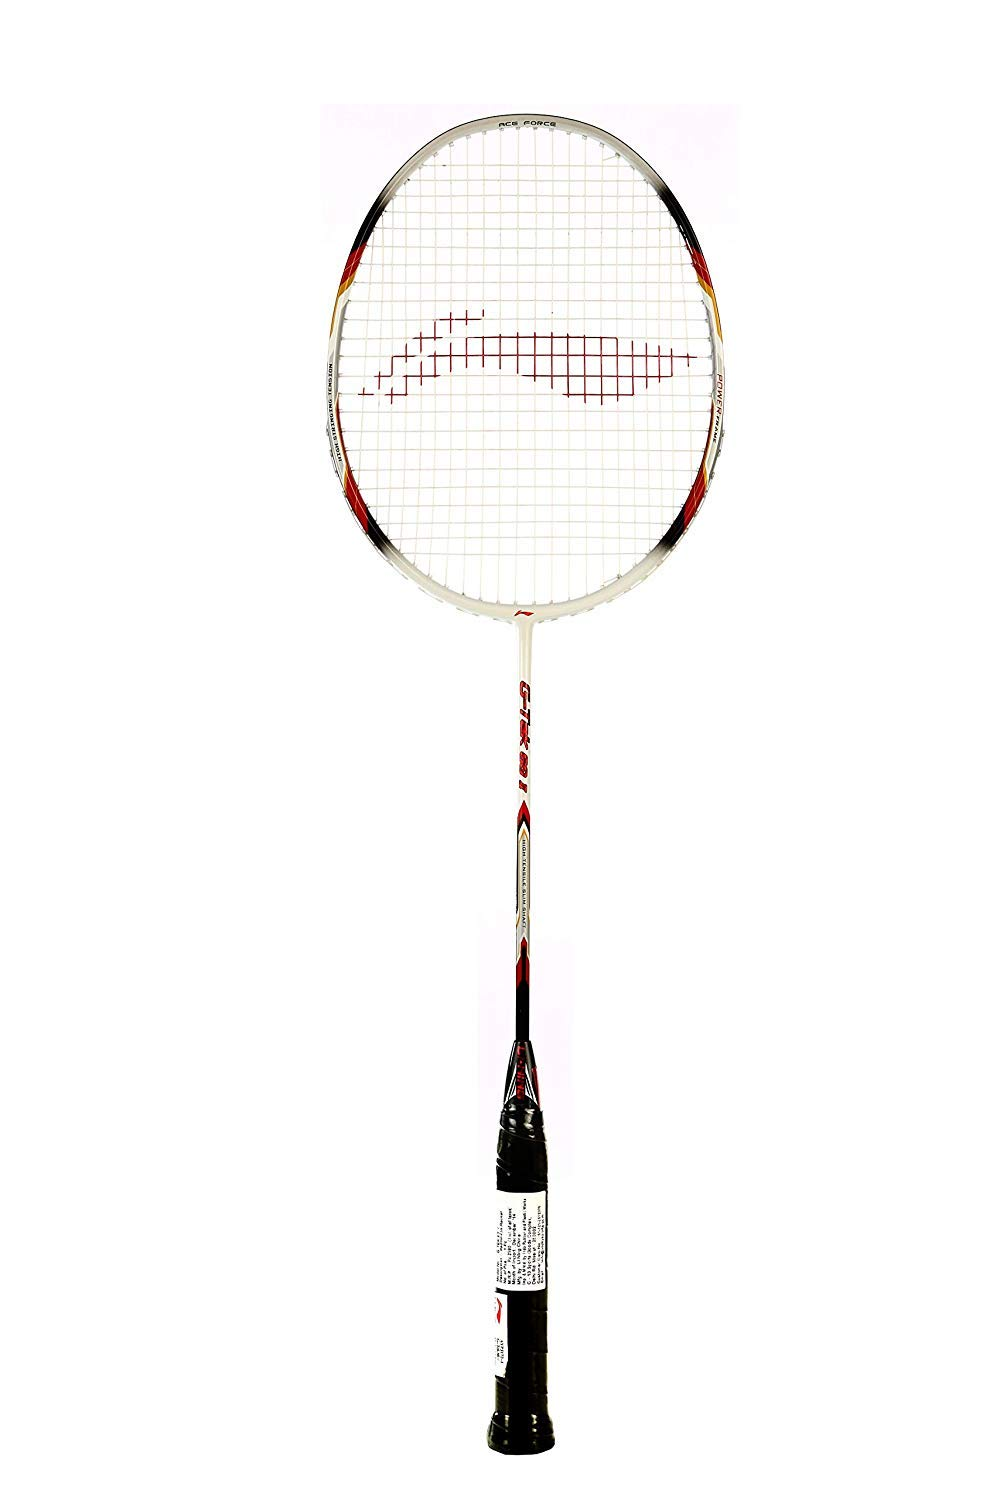 LI-NING Badminton Racket G-Tek Series Player Edition Light Weight Carbon Graphite Shaft 80+ GMS with Full Carrying Bag Cover (60 II White)